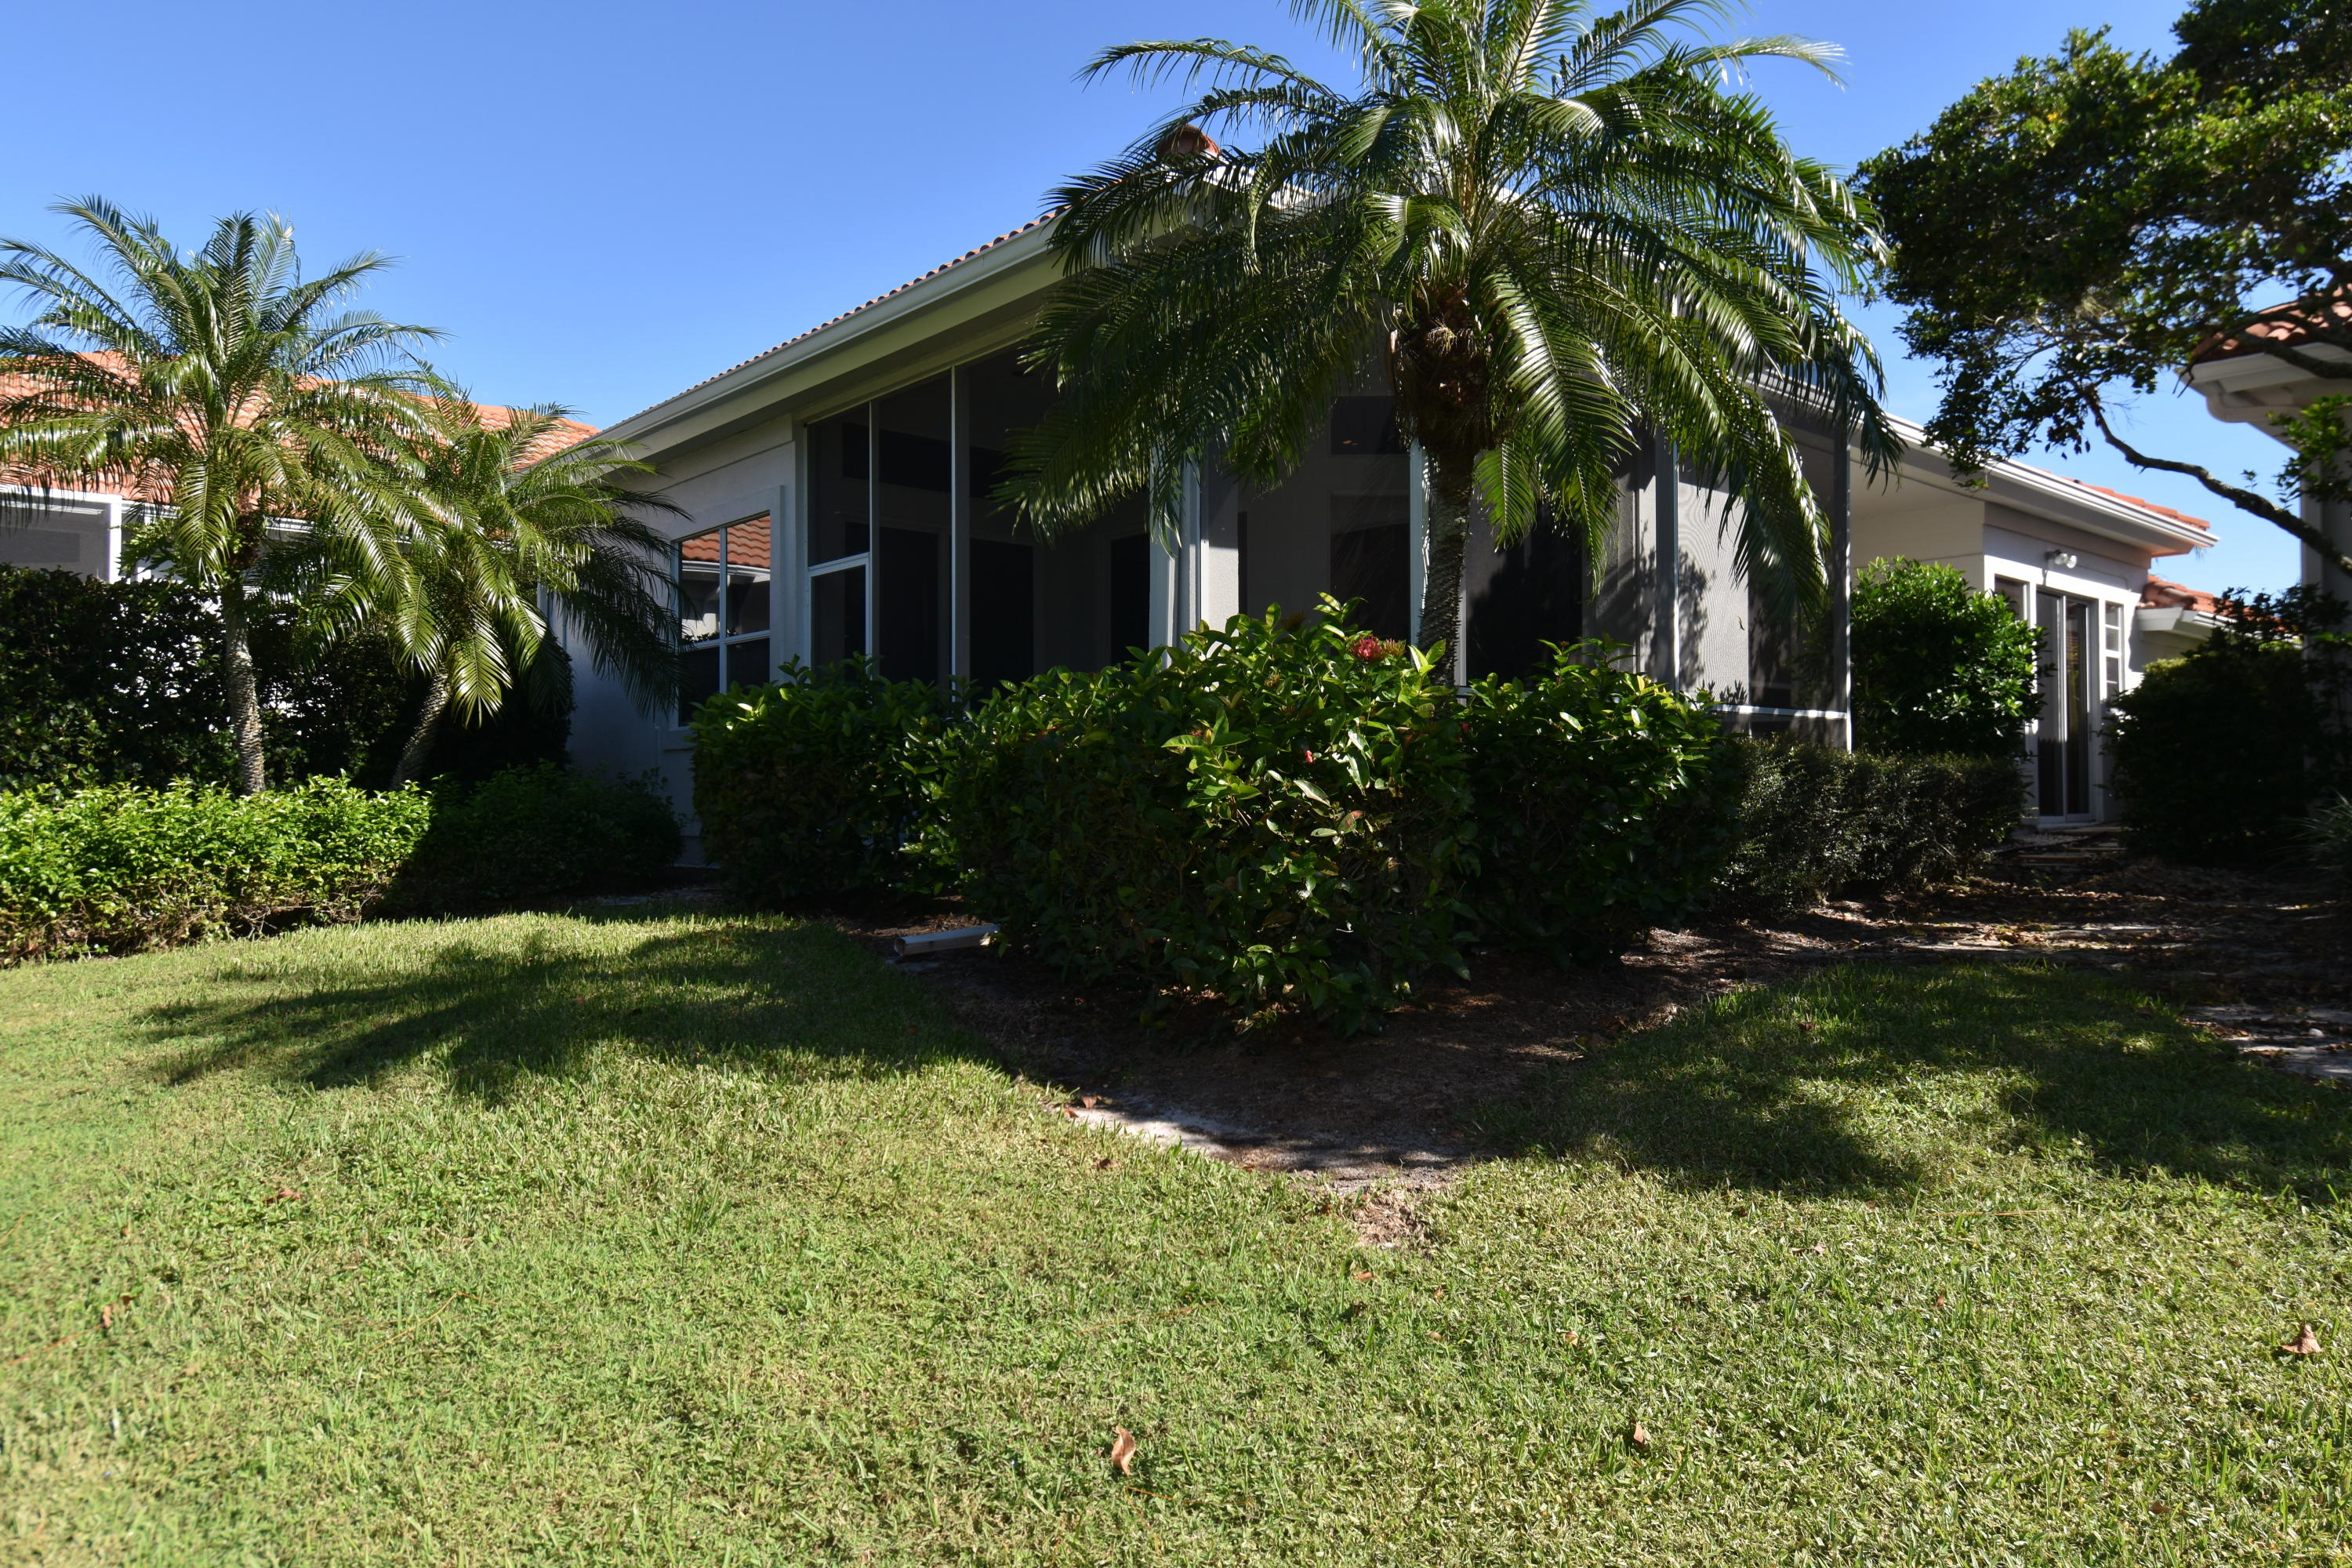 13021 Harbour Ridge Boulevard, Palm City, Florida 34990, 3 Bedrooms Bedrooms, ,2.1 BathroomsBathrooms,Single Family,For Sale,Harbour Ridge,RX-10390015